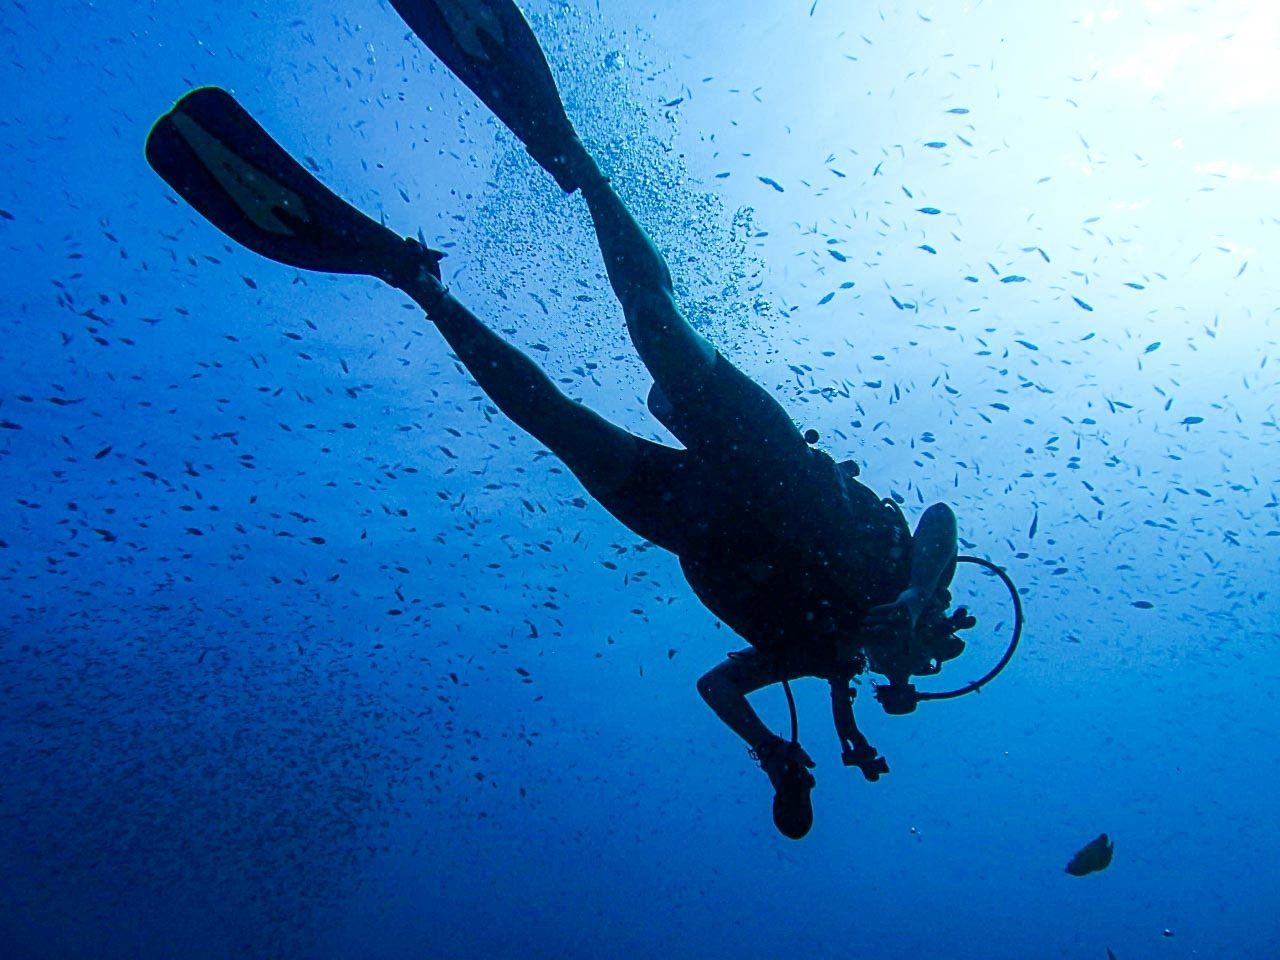 Surrounded by fish, a diver practices snorkeling in Koh Tao, Thailand.